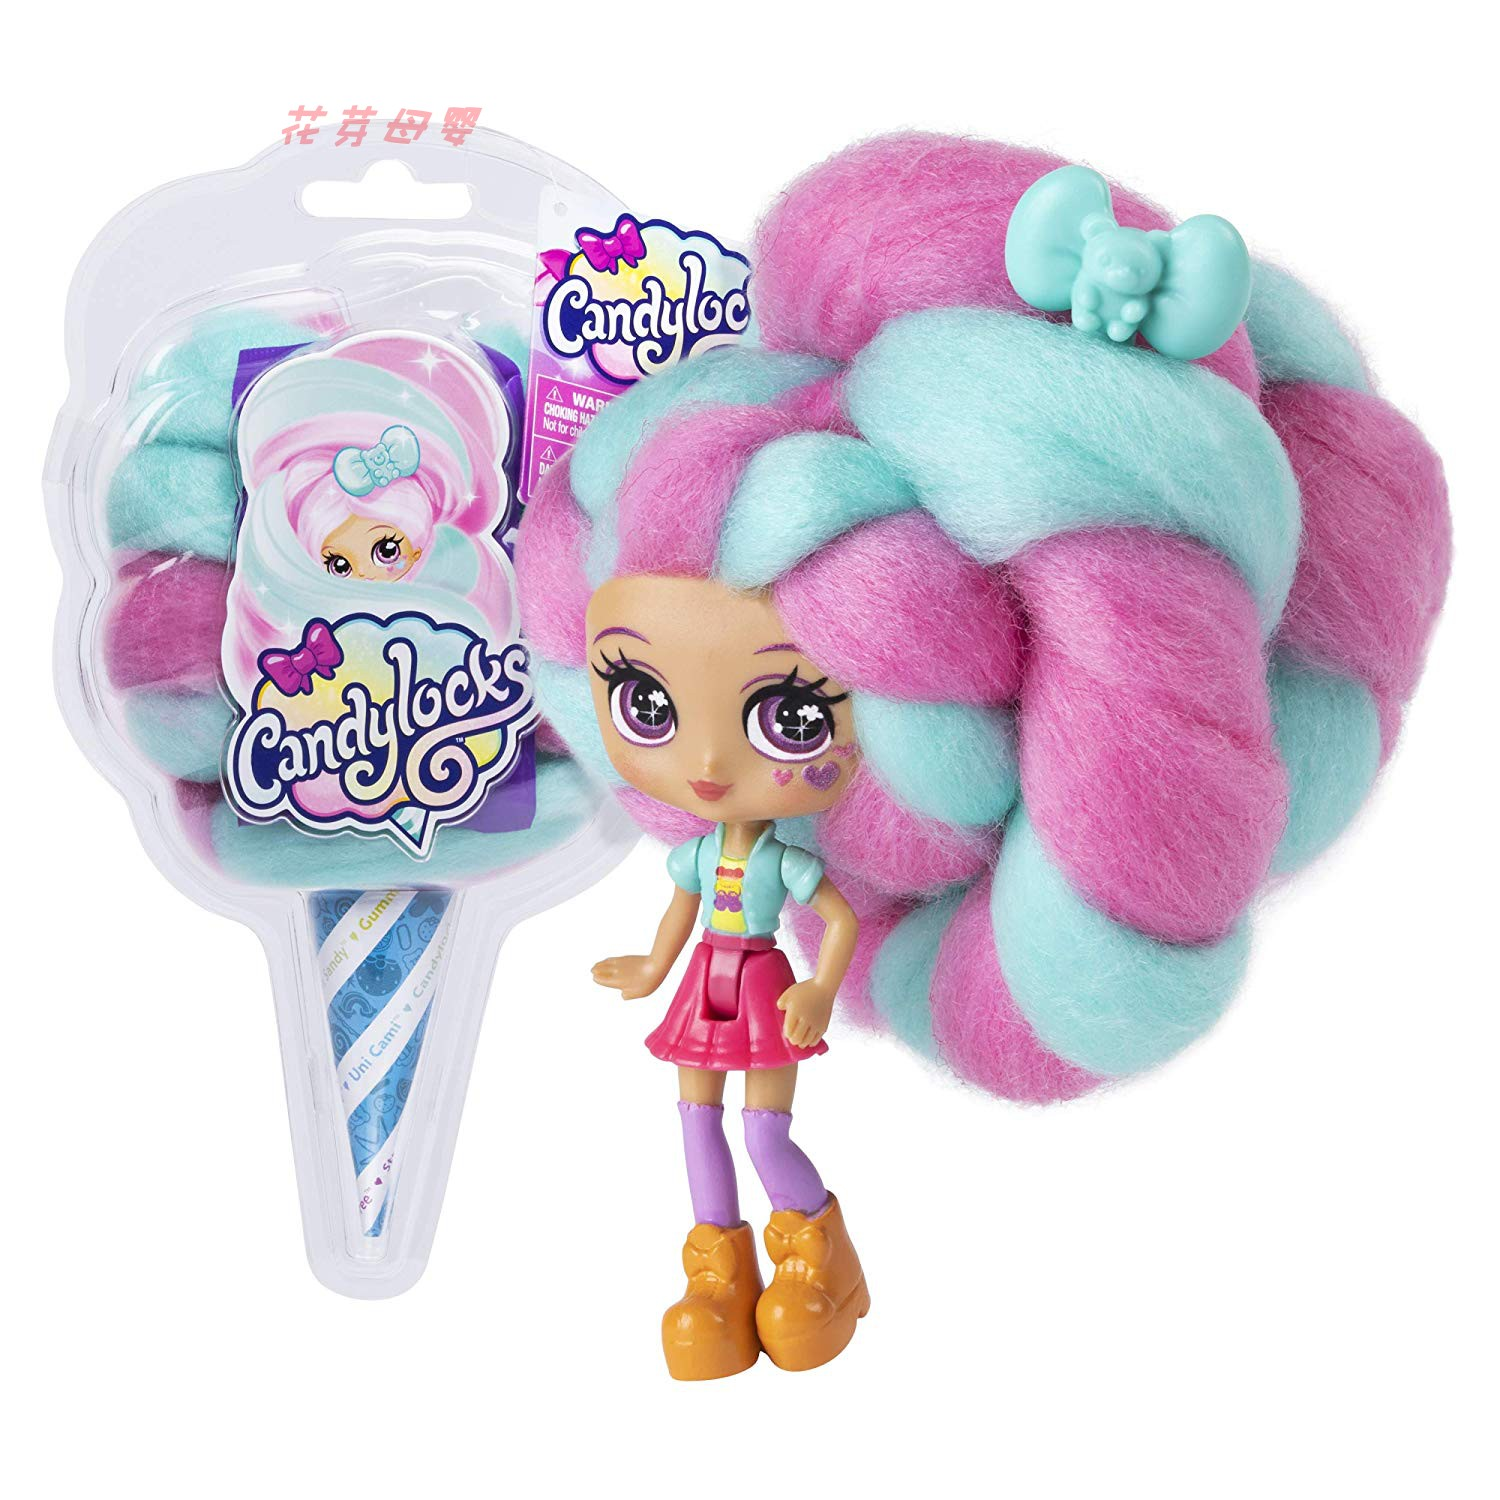 Reissue Candylocks Sweet Treat Toys Hobbies Dolls Accessories Marshmallow Hair 30cm Surprise Hairstyle With Scented Doll